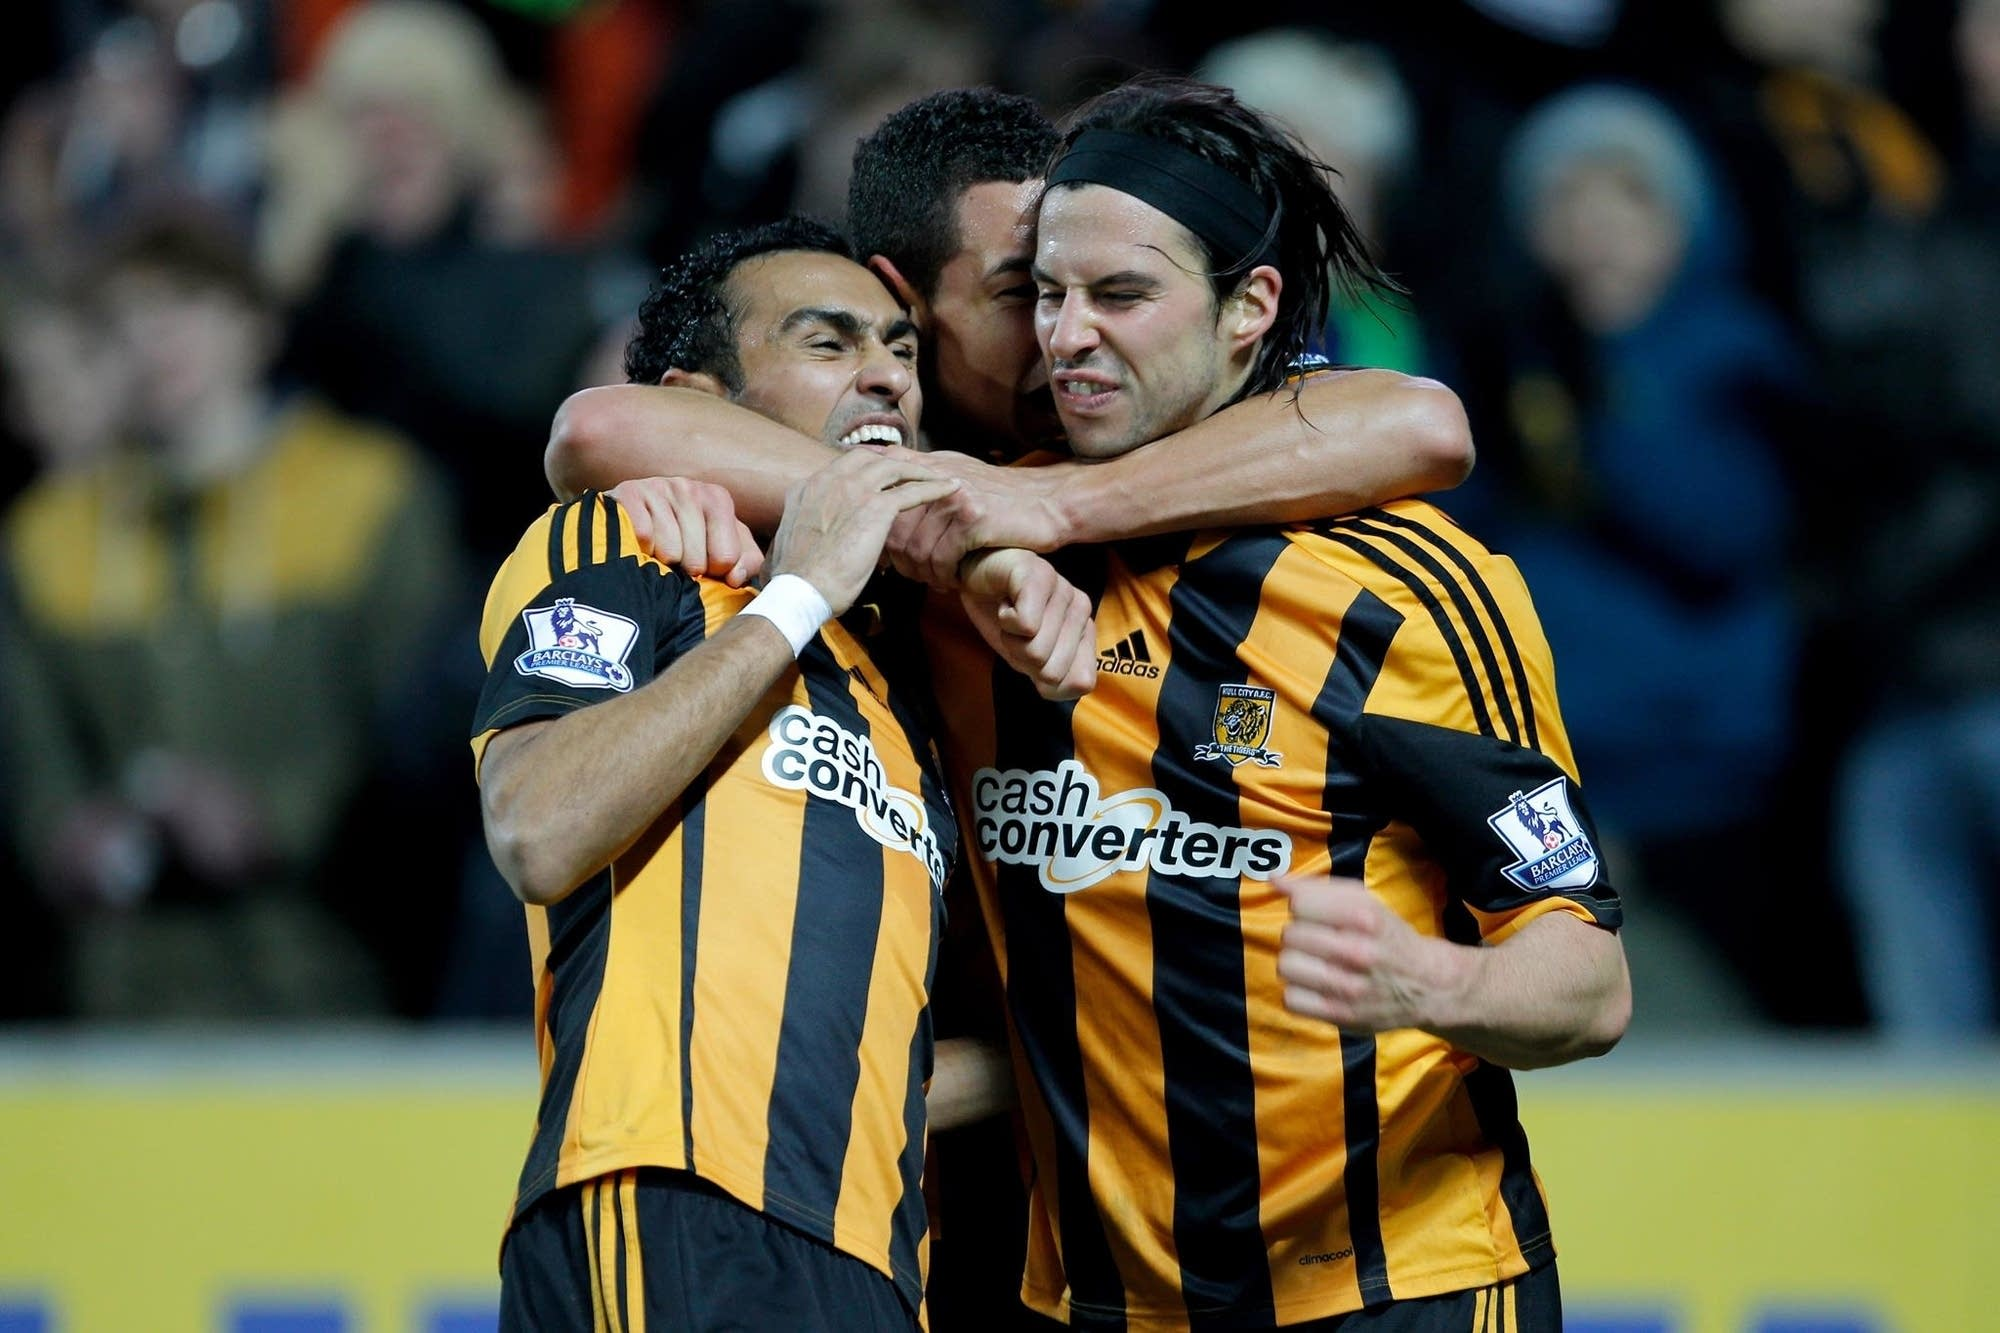 hull city goal celebration